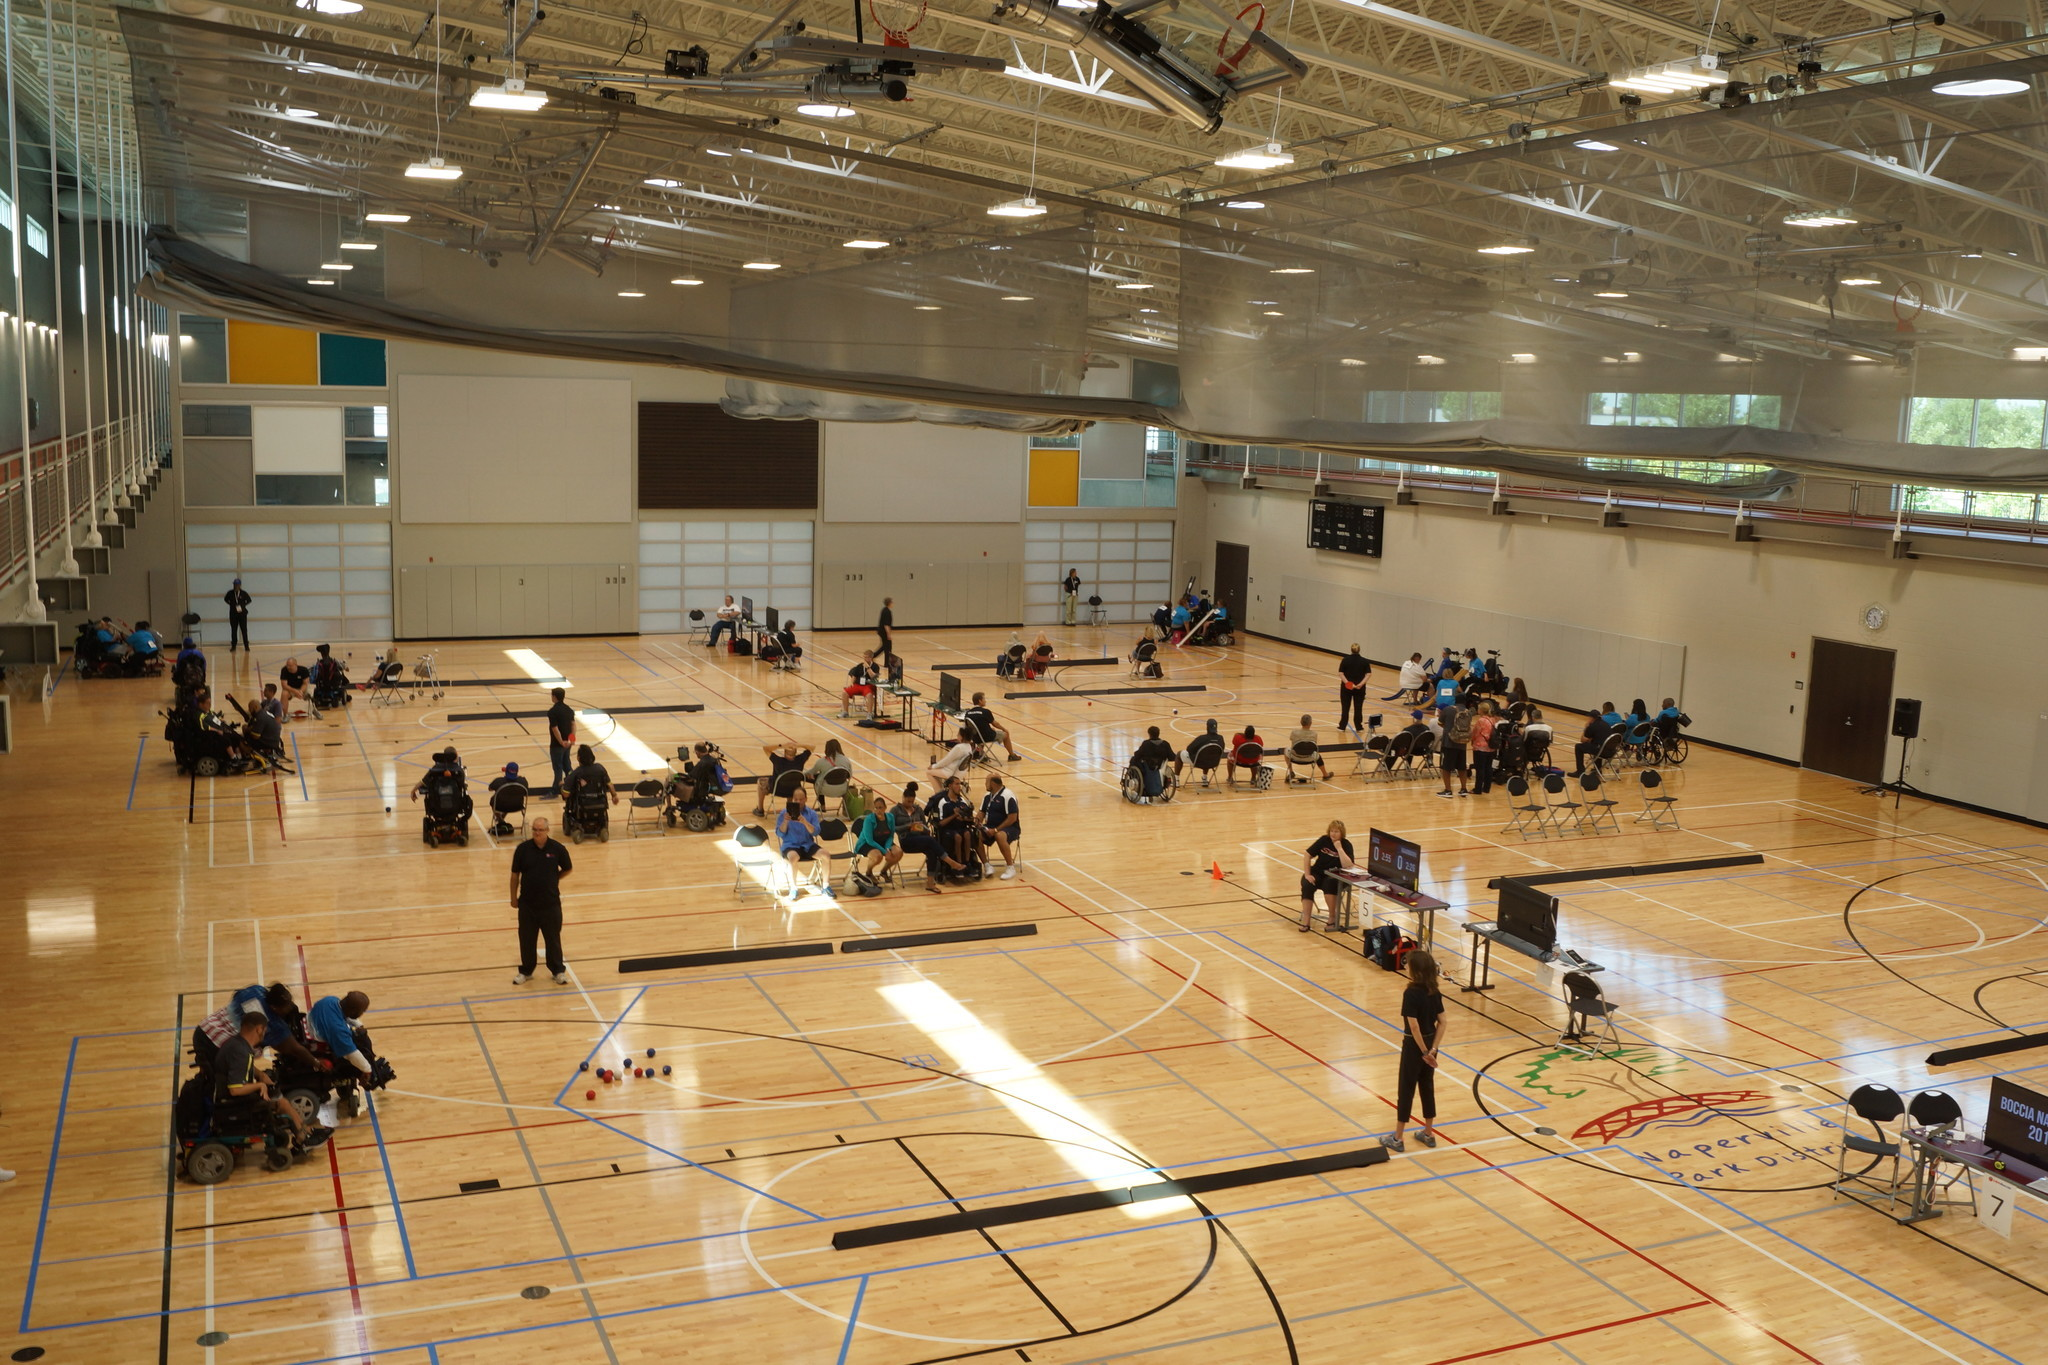 USA Boccia Nationals Coming to Naperville June 28-July 1